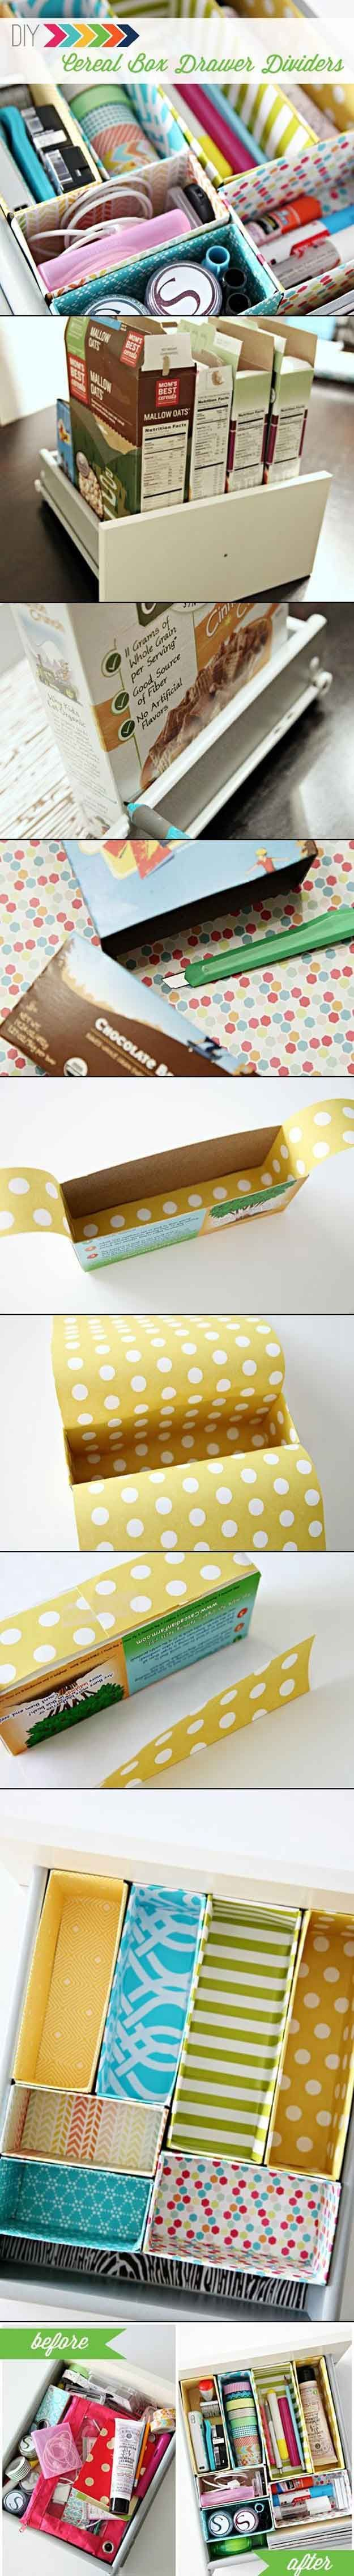 DIY Cereal Box Organizer and Divider Tutorials | DIY Cereal Box Drawer Divider by DIY Ready at http://diyready.com/28-things-you-can-make-from-cereal-boxes/